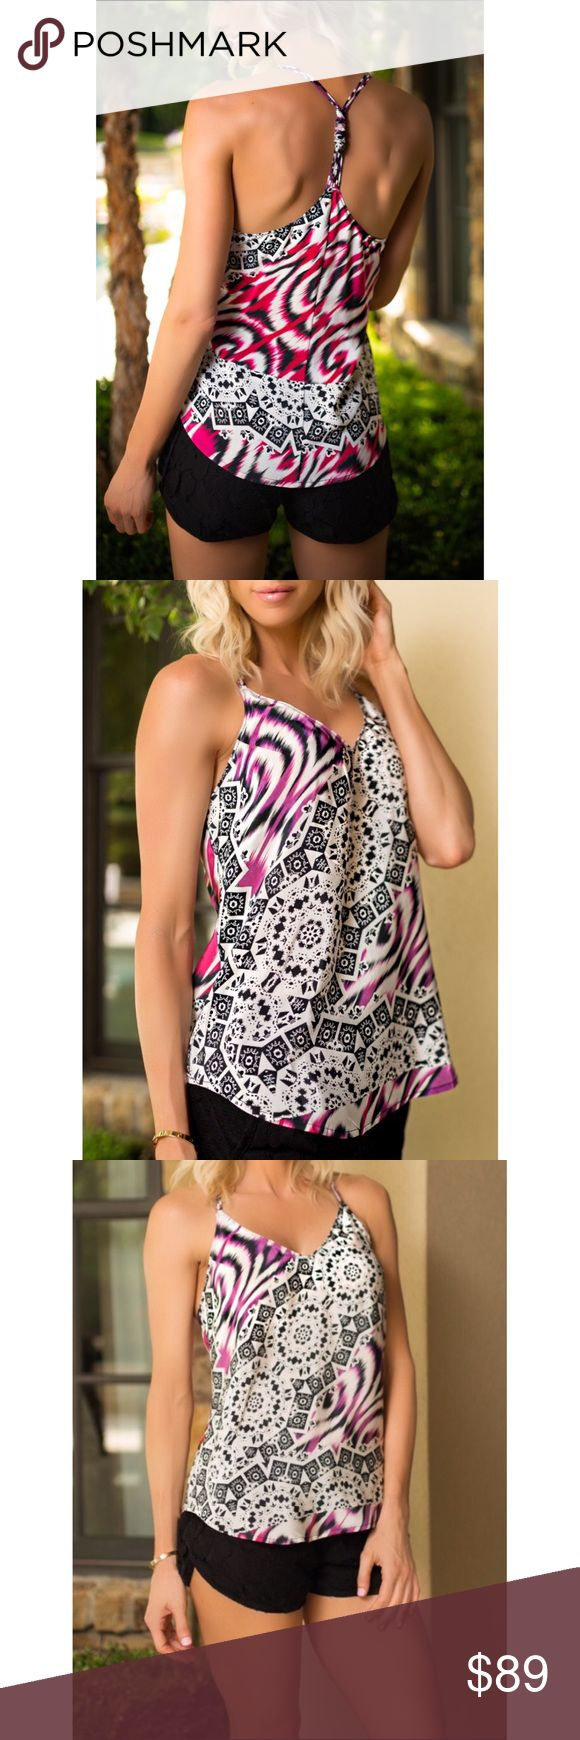 "🆕 Charlie Jade 100% Silk Fuchsia Racerback Top Just one look and you know this 100% silk chiffon top has to be yours! A vibrant mix of geometrical prints and zigzags in black, white, and fuchsia will dress up your favorite bottoms. The asymmetrical hemline and v-neck cut is complimented with three tiny straps on each side that come together in the middle of the back and are held together by the cutest little scrunch detail.  🔮27"" front/back length; 25"" side length; 36"" bust (size Medium)…"